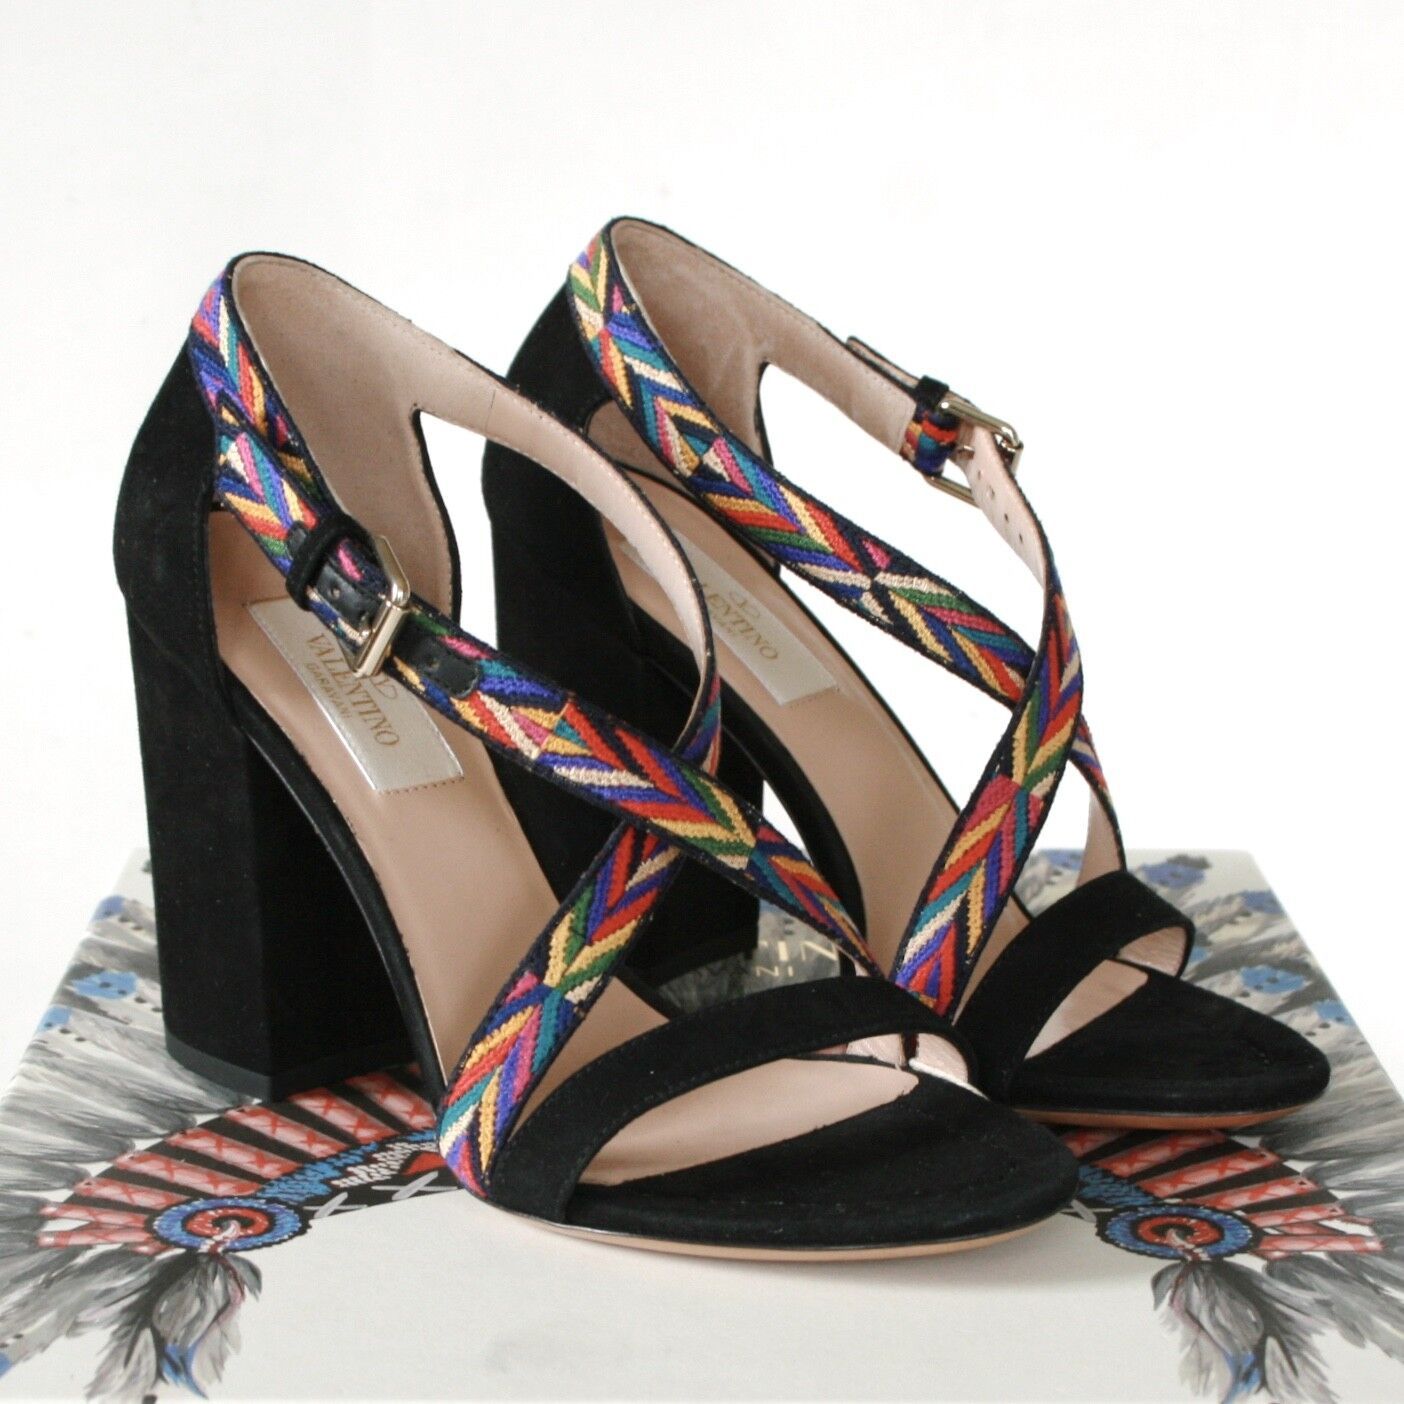 VALENTINO GARAVANI embroidered shoes native american high heel sandals 35 NEW